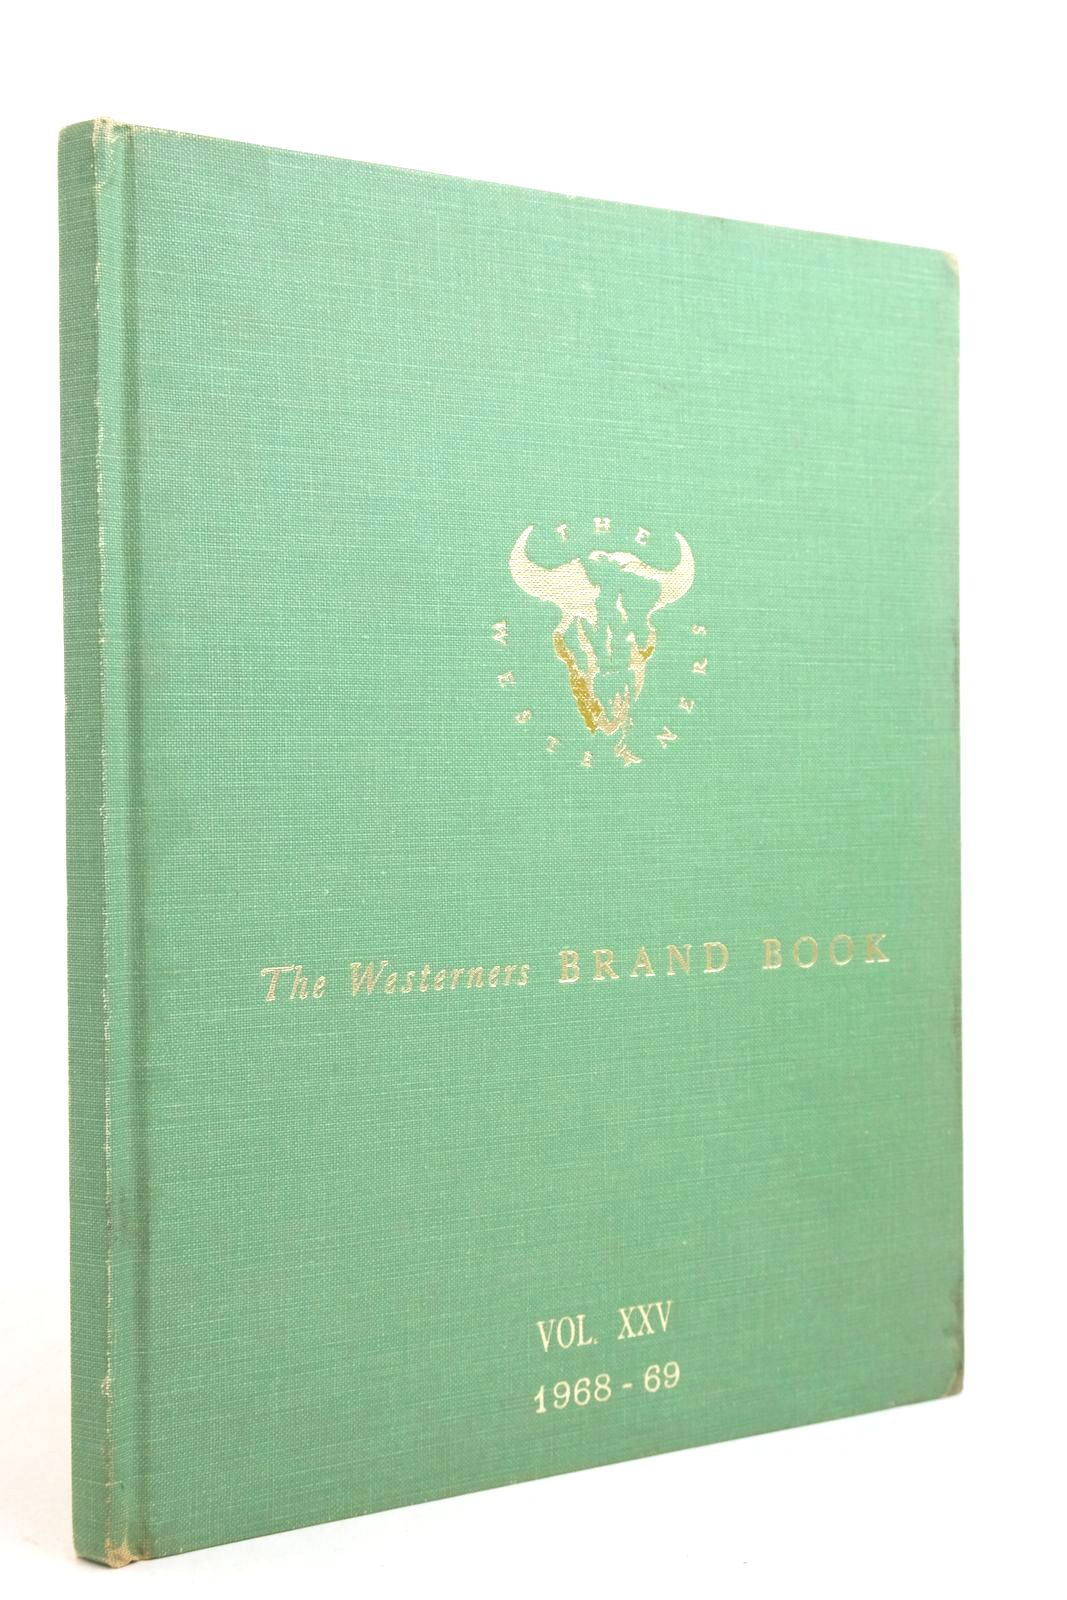 Photo of THE WESTERNERS BRAND BOOK VOLUME XXV MARCH 1968 TO FEBRUARY 1969 published by The Chicago Corral Of The Westerners (STOCK CODE: 2134829)  for sale by Stella & Rose's Books